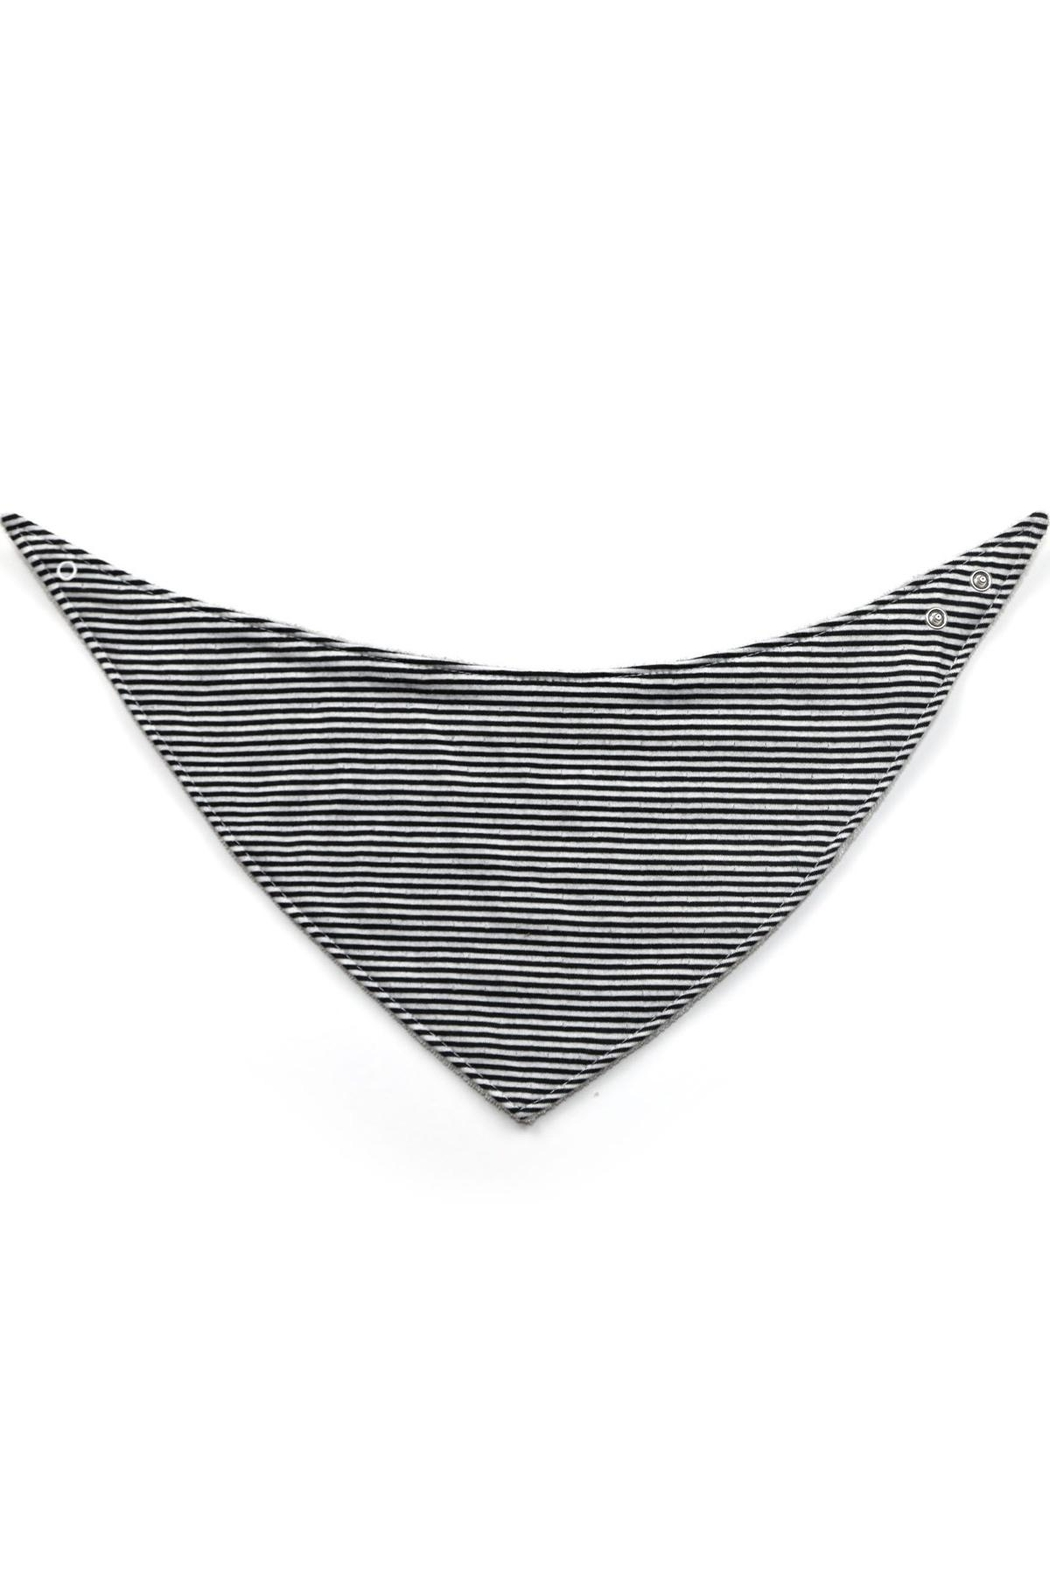 Kapital K Bandana Bib Set - Back Cropped Image